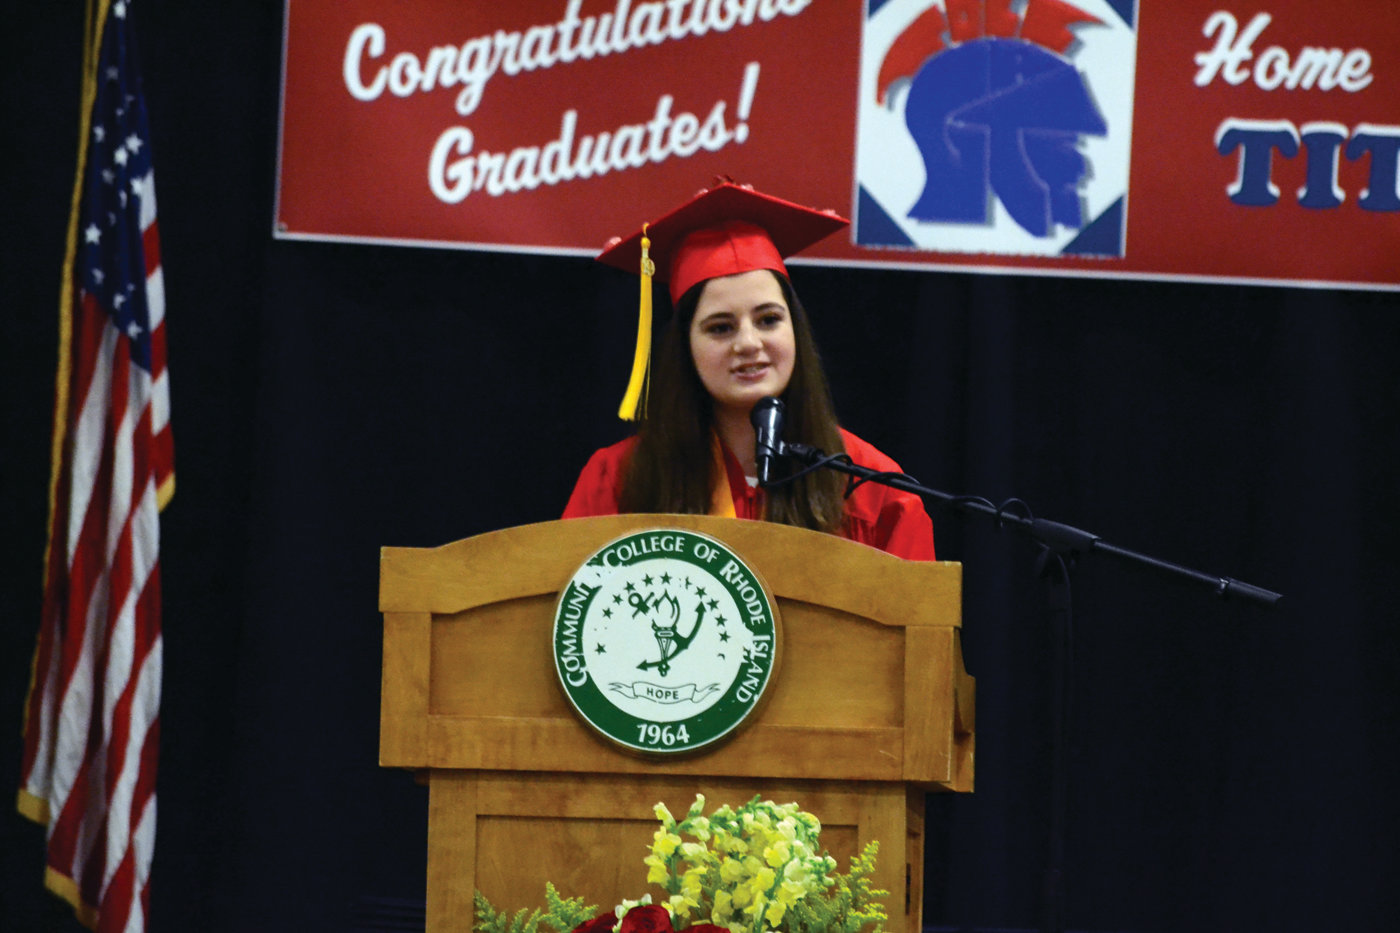 FIND YOUR JOY: Salutatorian Rebecca Carcieri delivers her address on Thursday evening at CCRI.